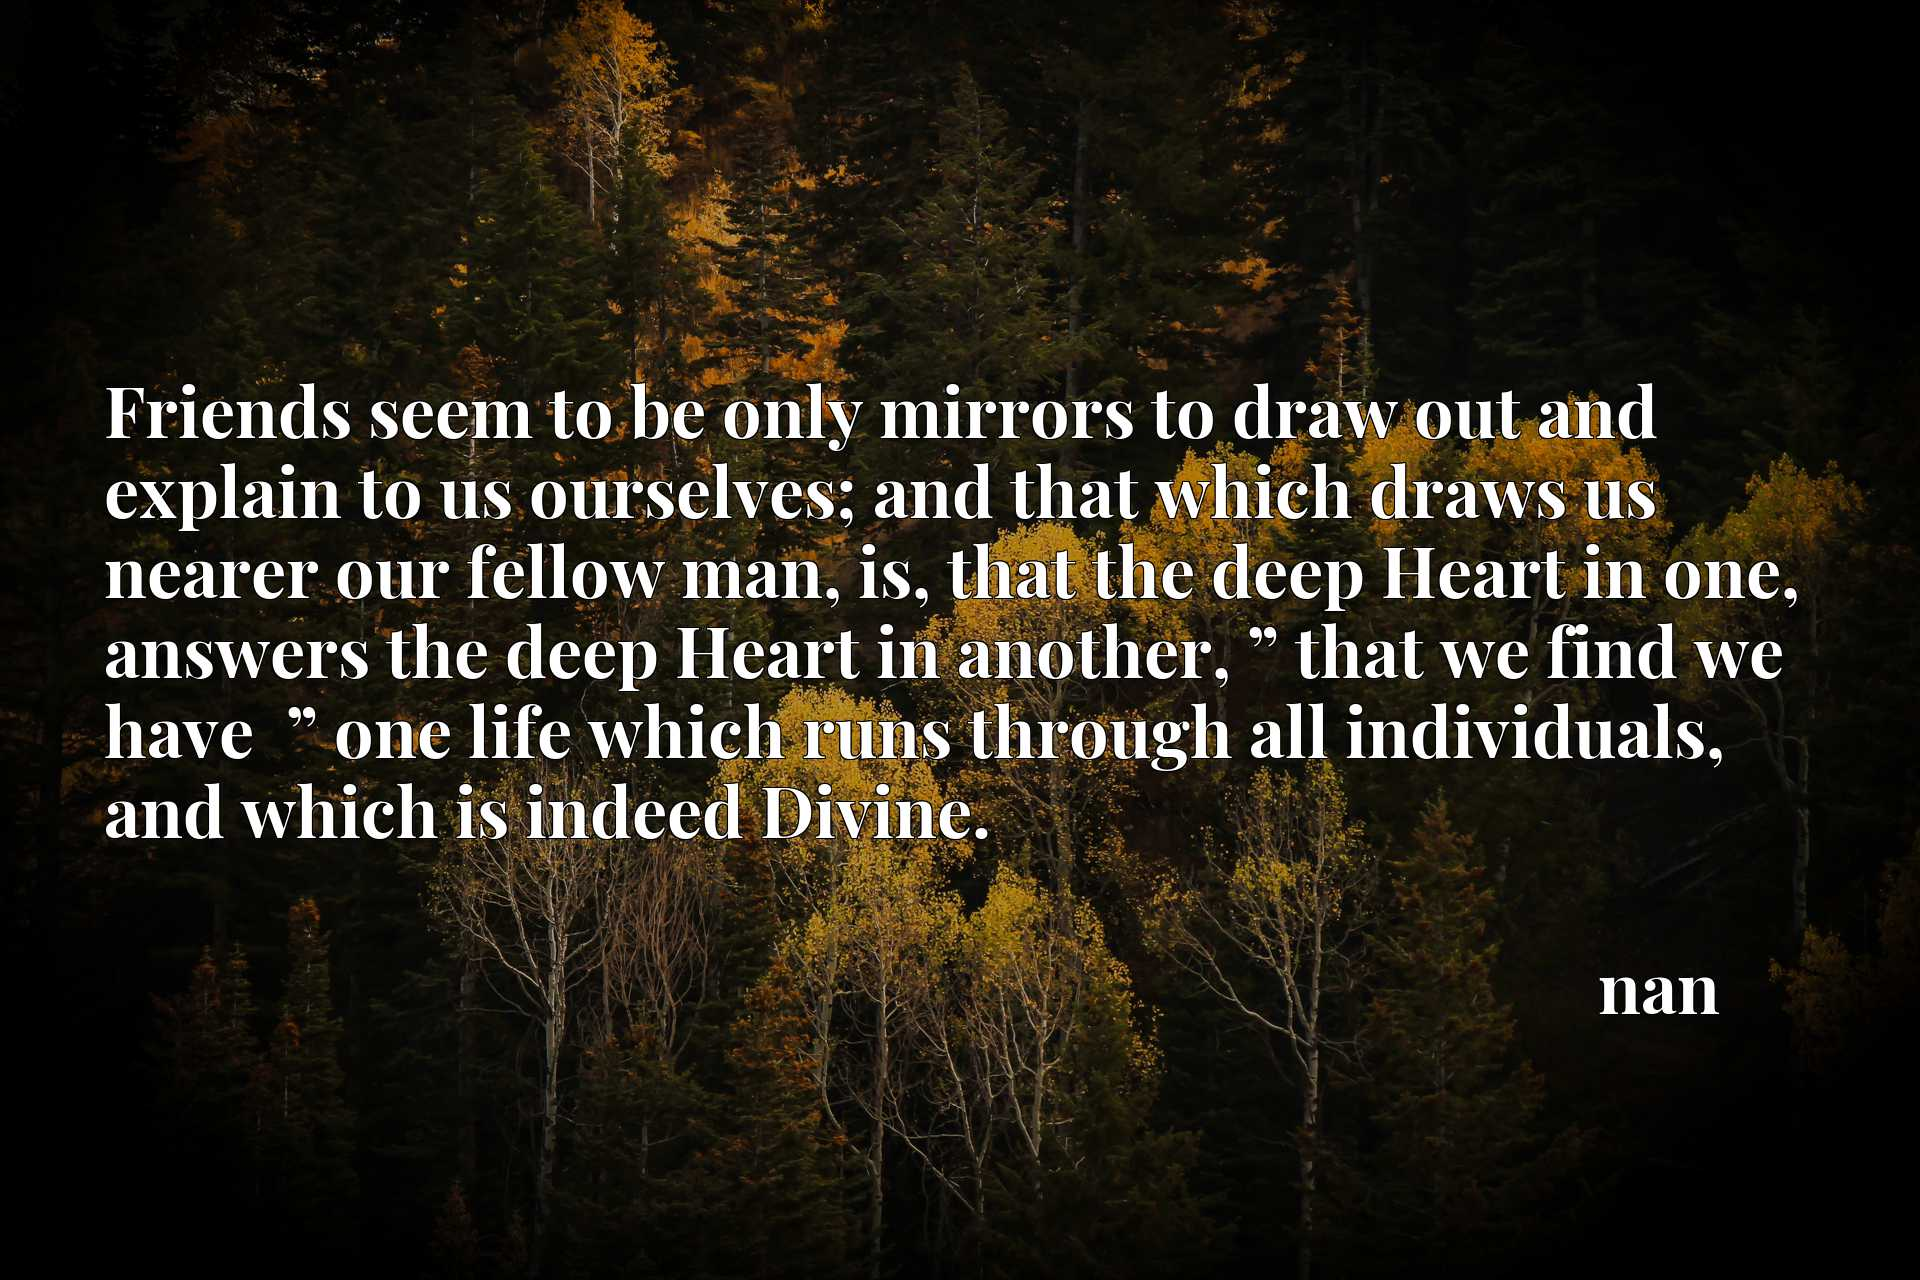 """Friends seem to be only mirrors to draw out and explain to us ourselves; and that which draws us nearer our fellow man, is, that the deep Heart in one, answers the deep Heart in another, """" that we find we have  """" one life which runs through all individuals, and which is indeed Divine."""